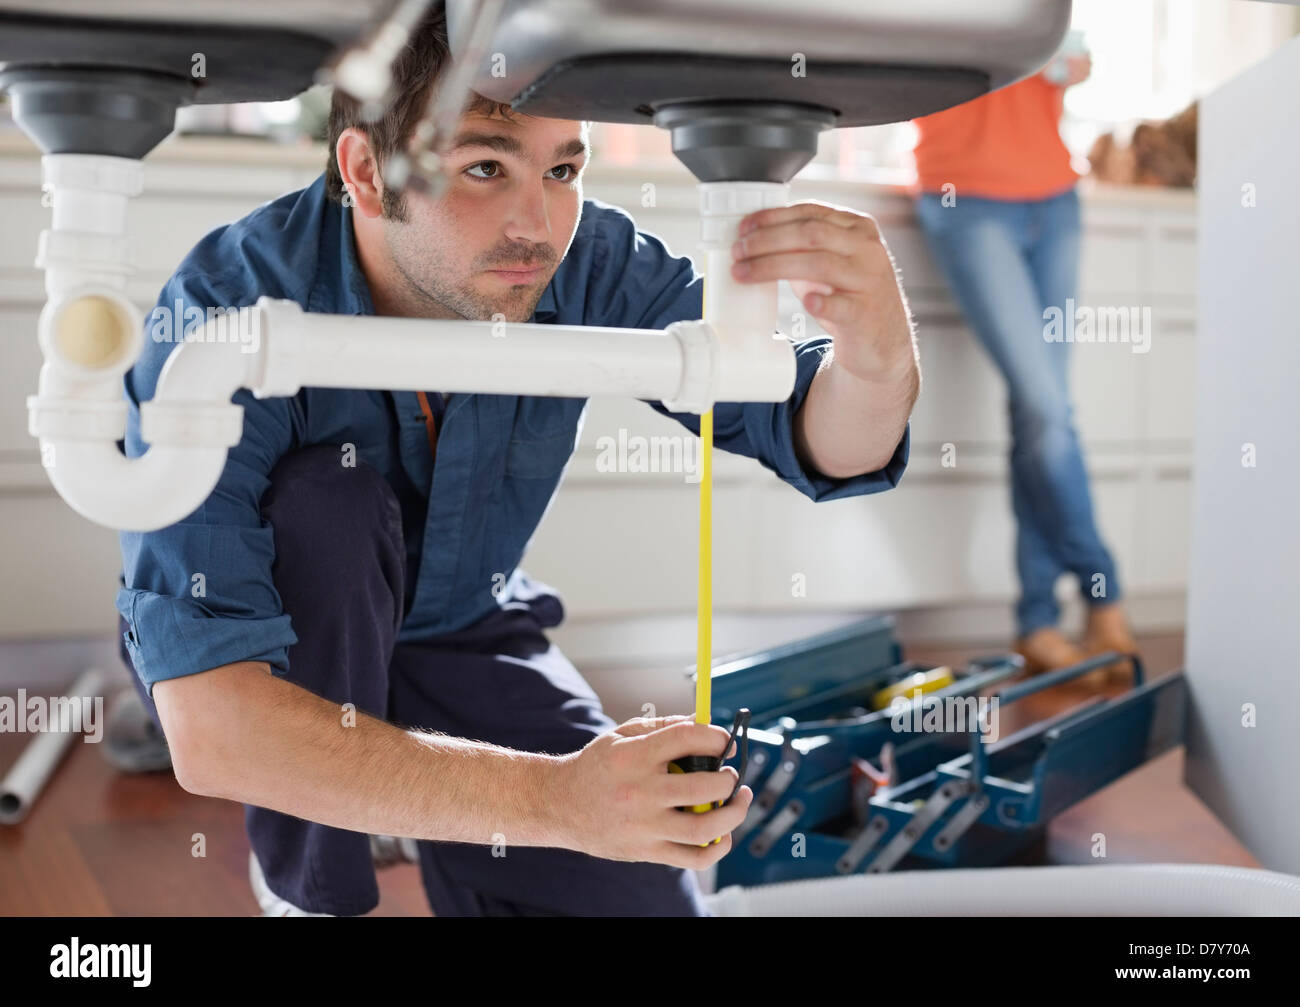 Plumber working on pipes under kitchen sink - Stock Image